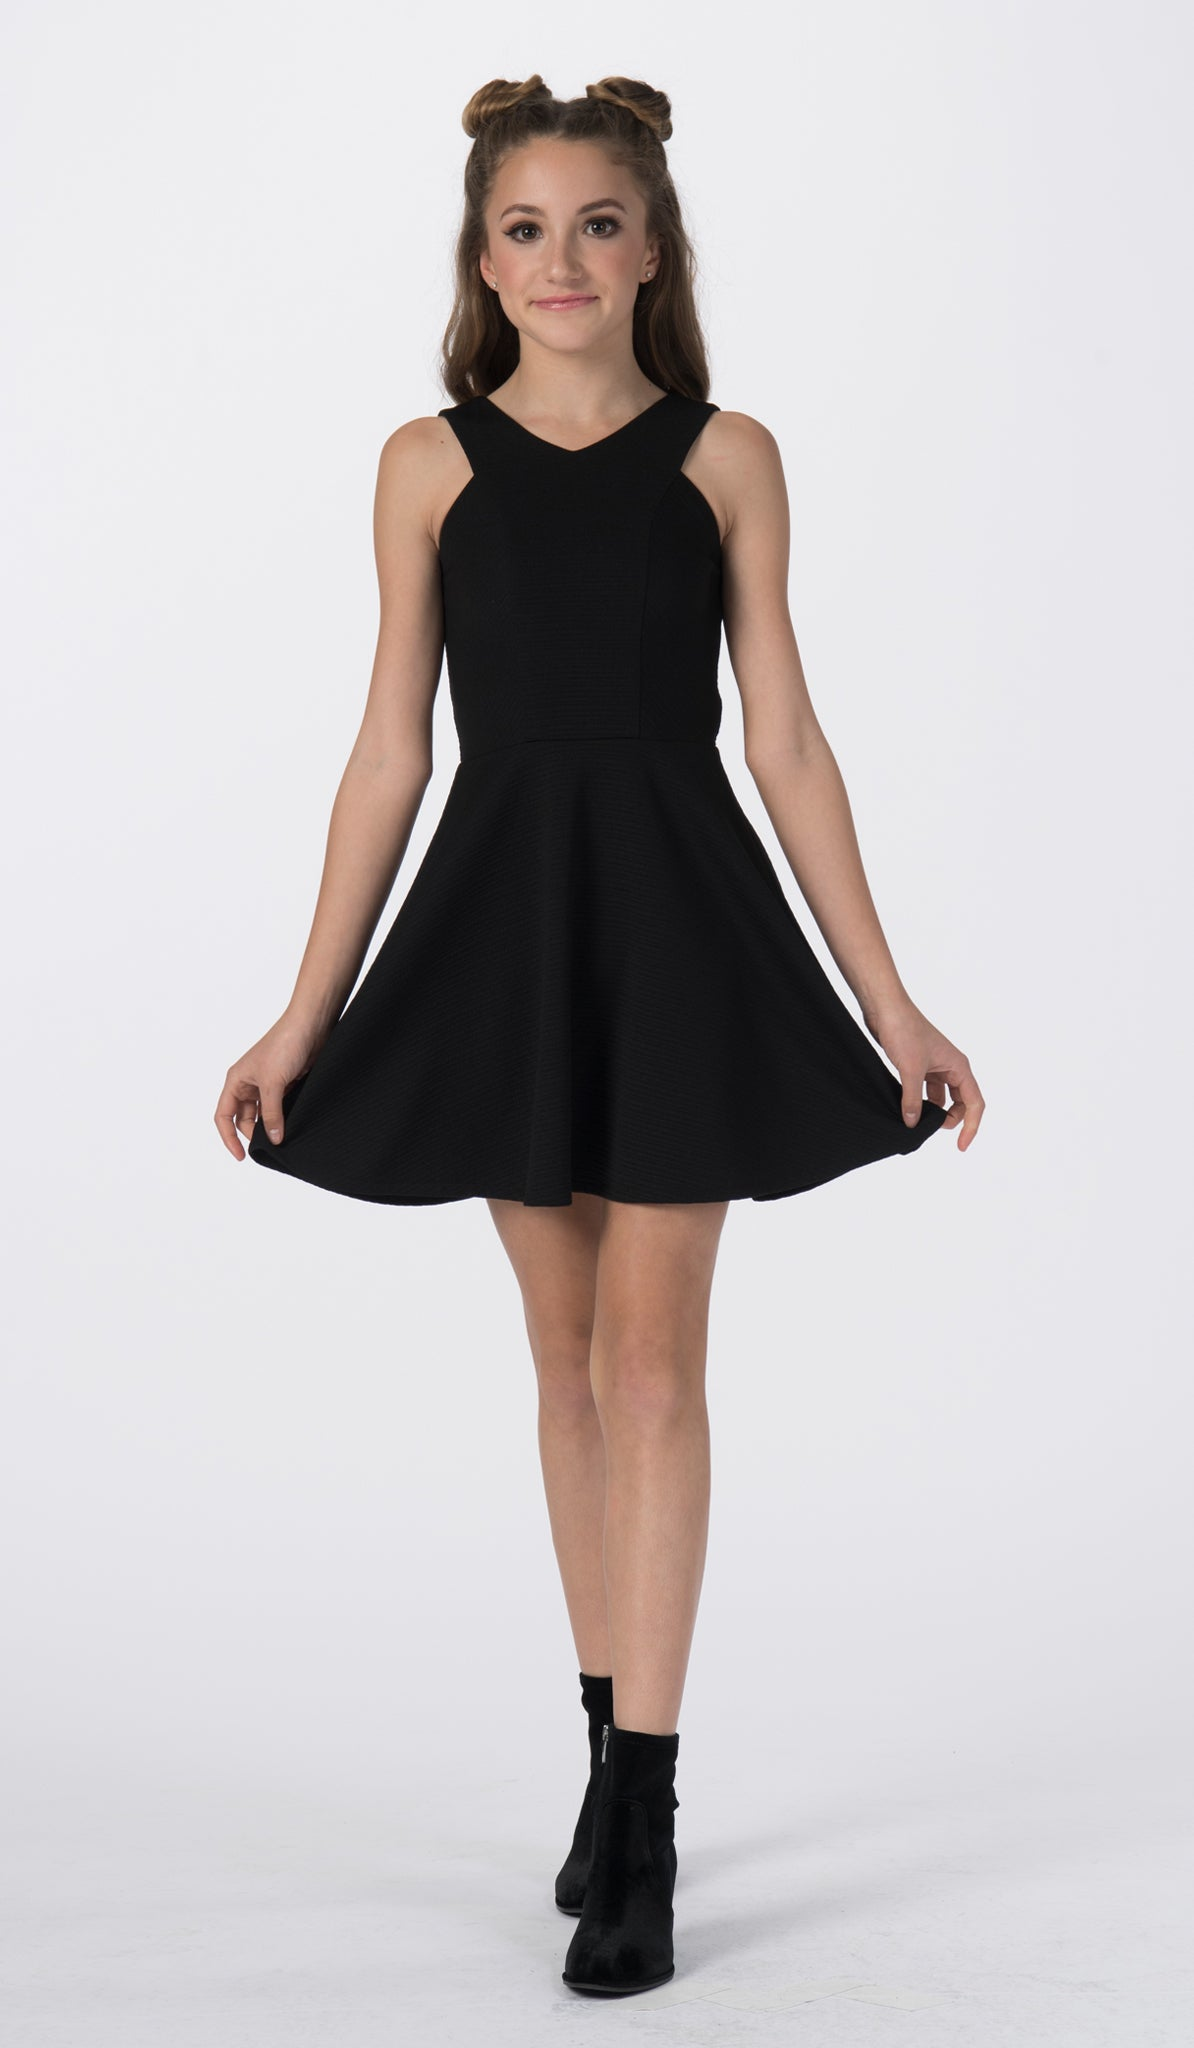 Sally Miller tween black fit and flare textured stretch knit special occasion dress front view